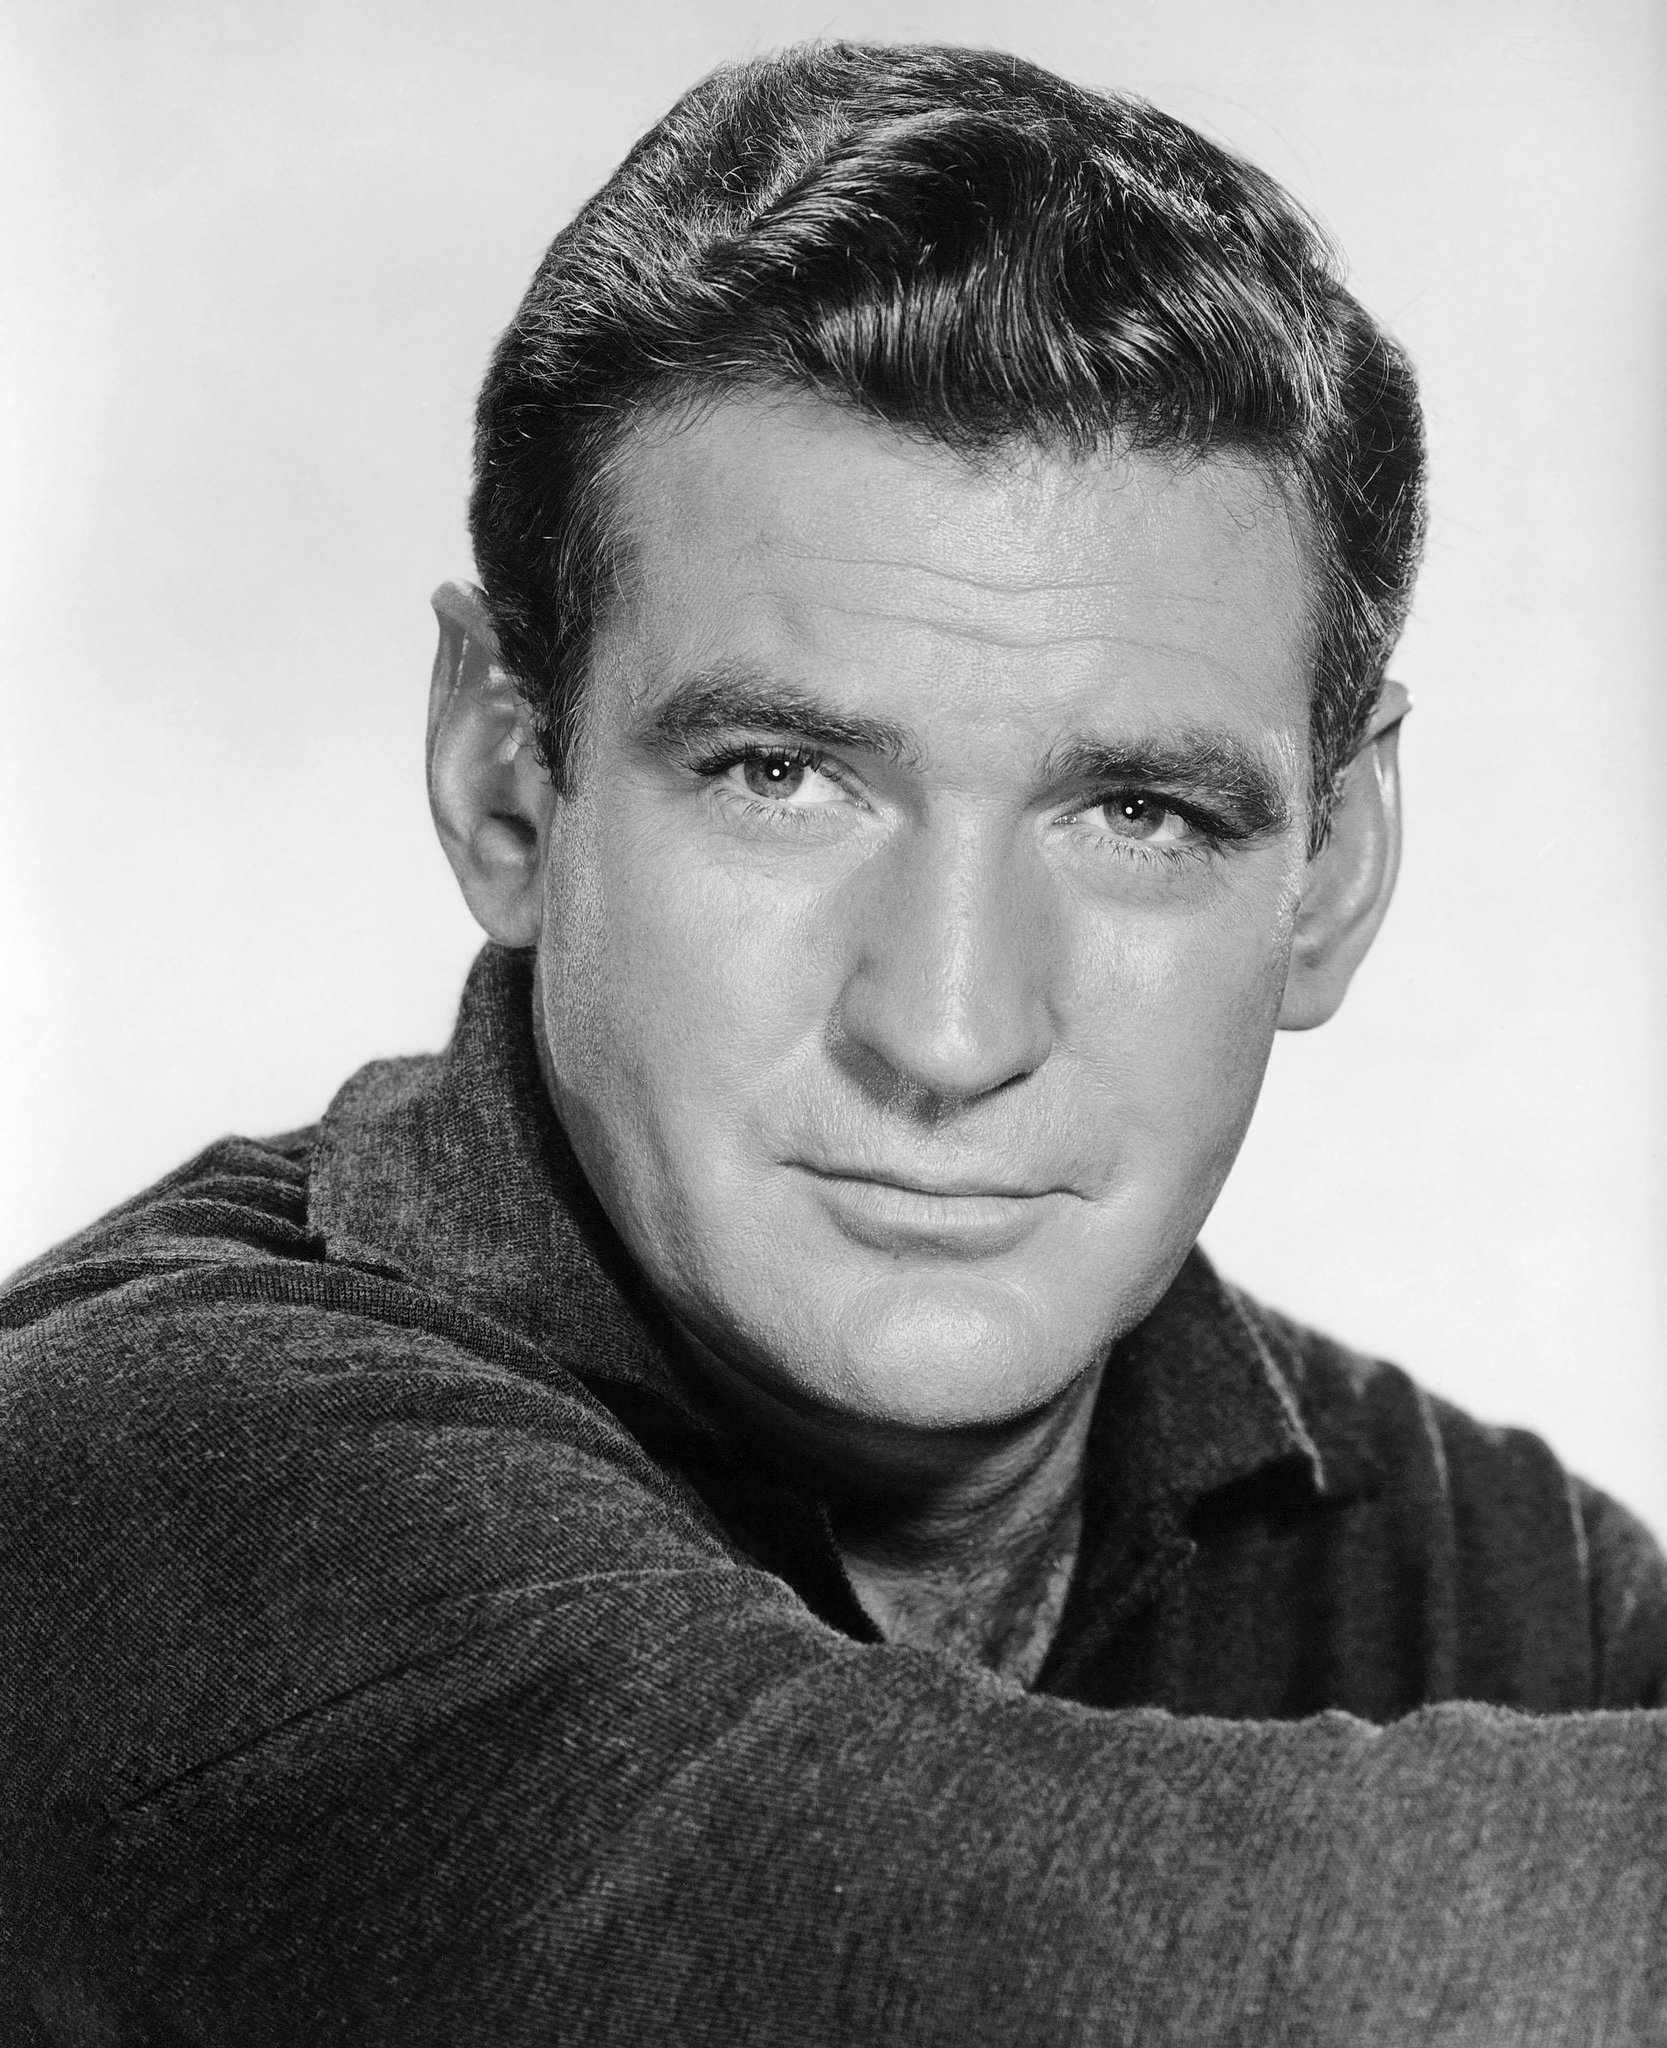 Happy Birthday to the legendary actor Rod Taylor, who would have been 88 today! (1930-2015)